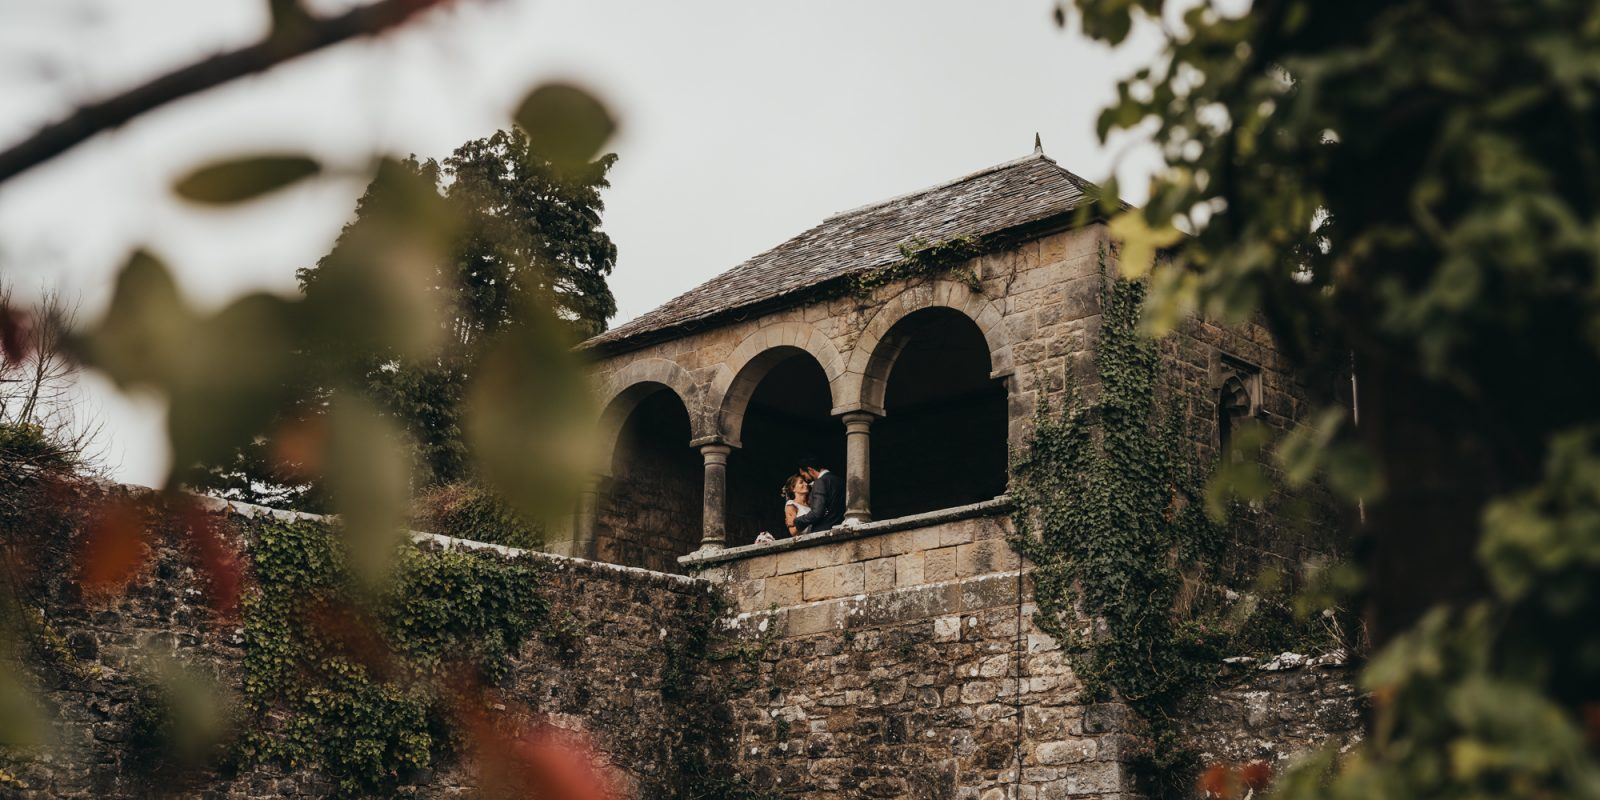 Romeo and juliet tower at st donats castle